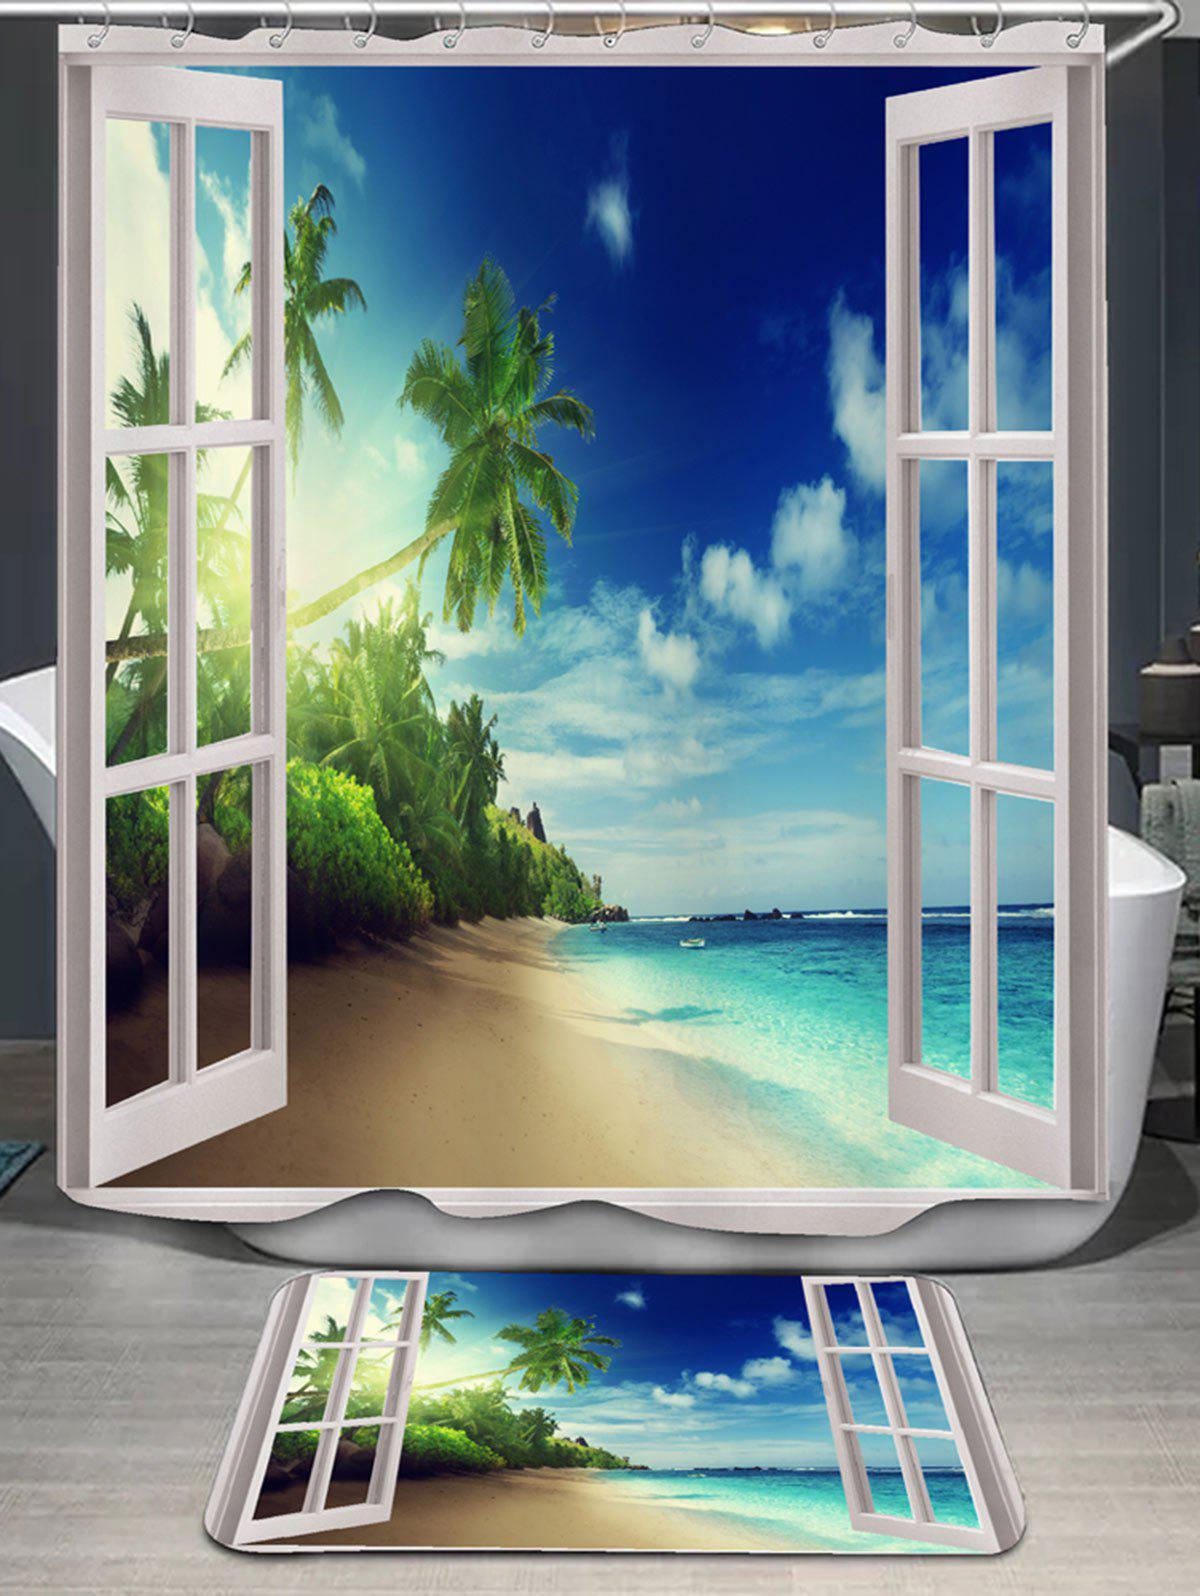 Coconut Palm Window Scenery Shower Curtain and Rug шлифовальная машина black decker kg1202k